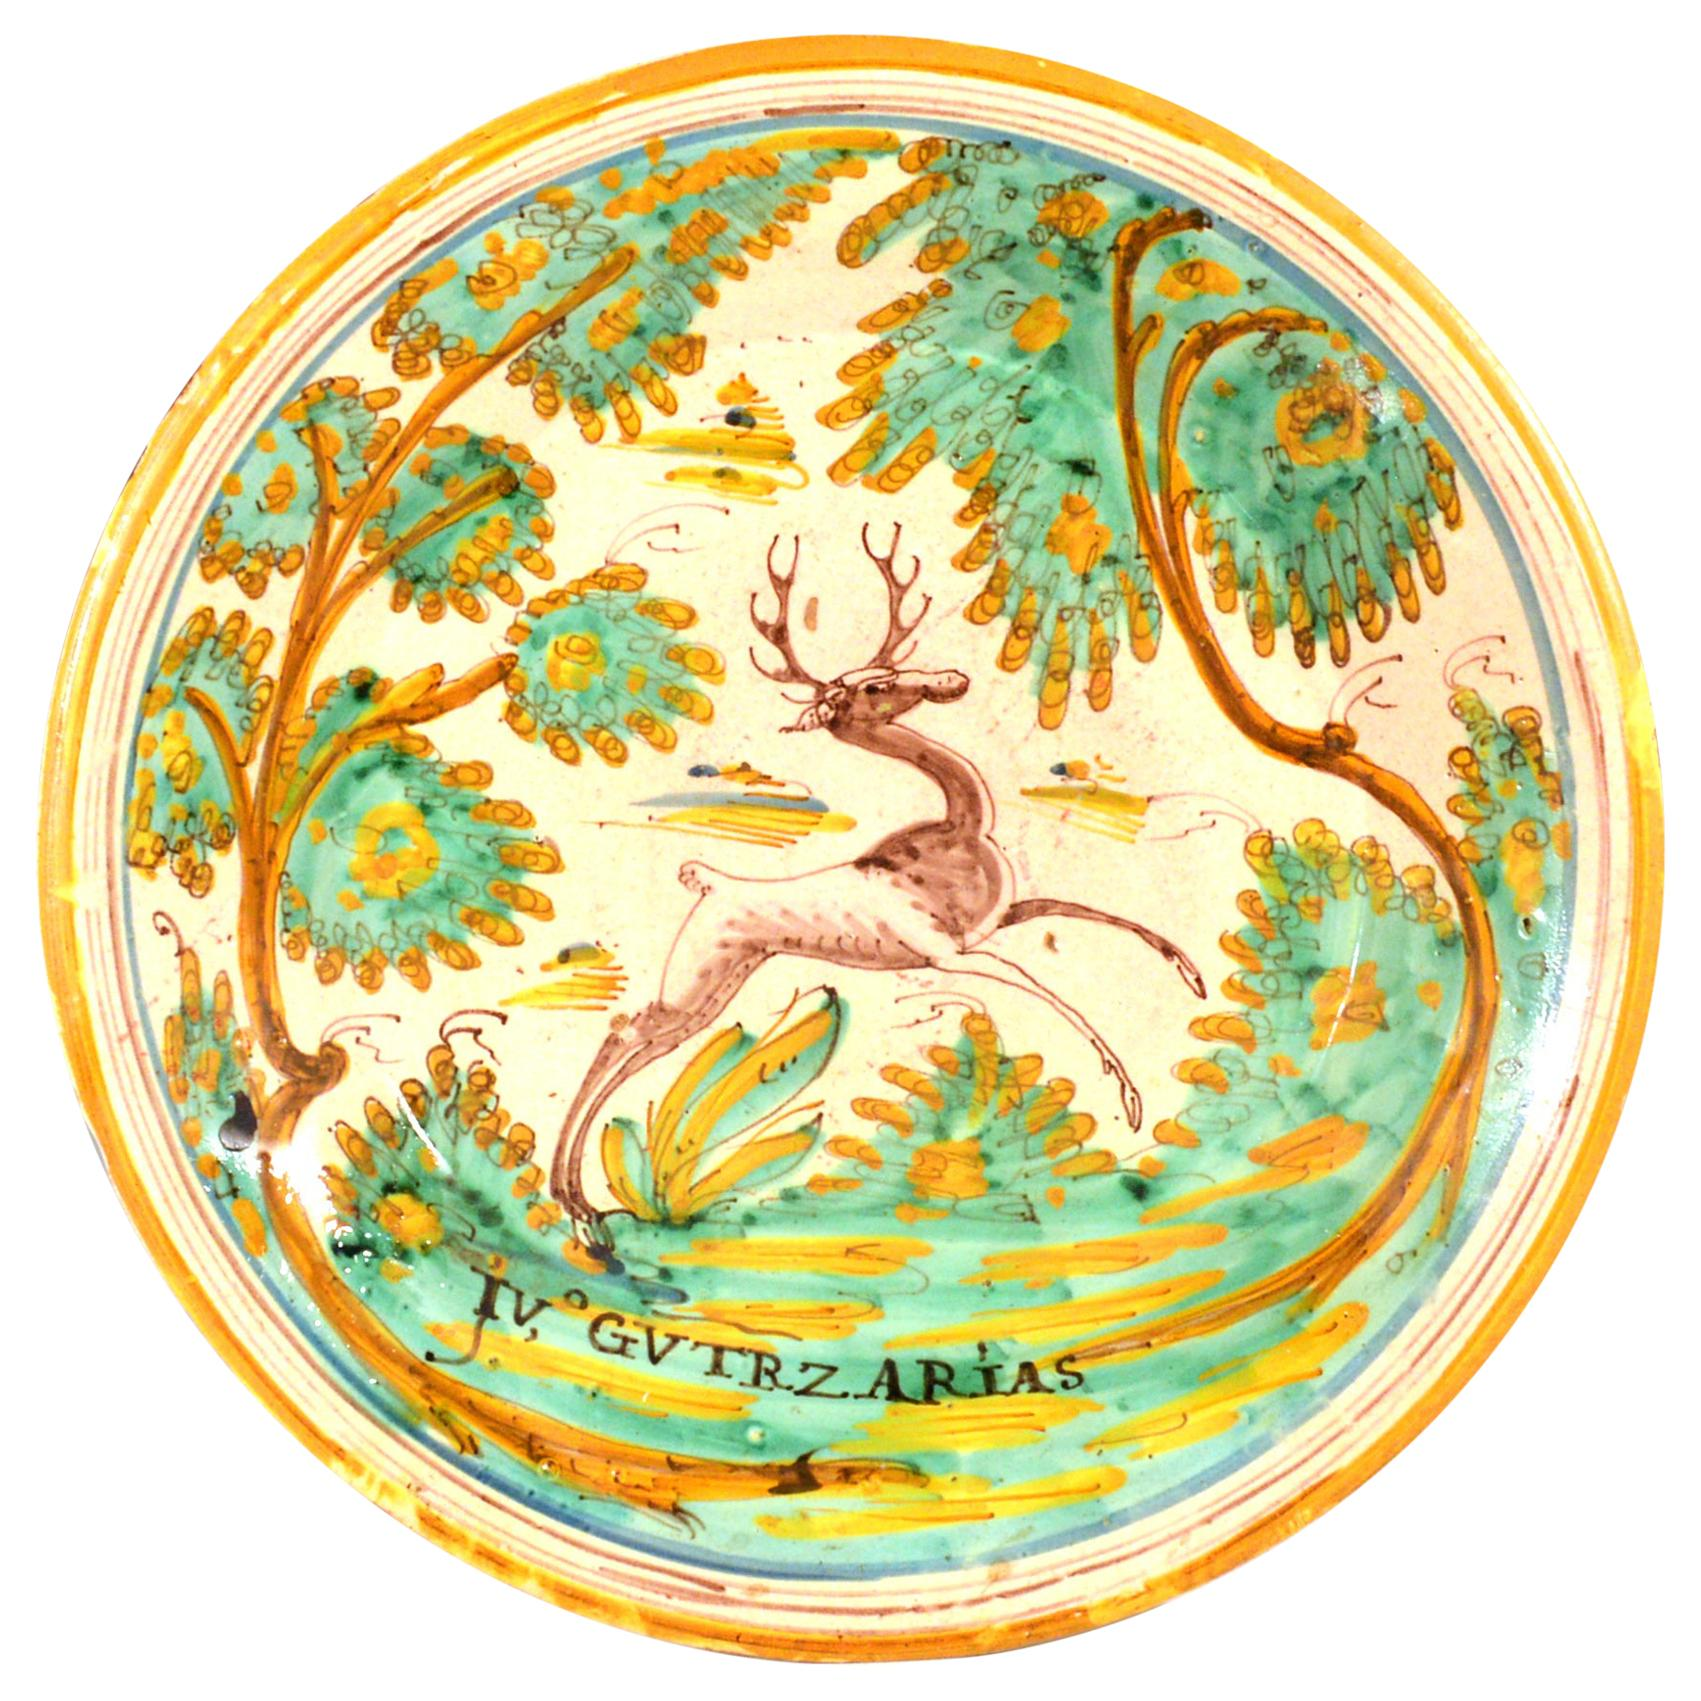 Spanish Faience Charger with Leaping Stag, Talavera, circa 1780-1800